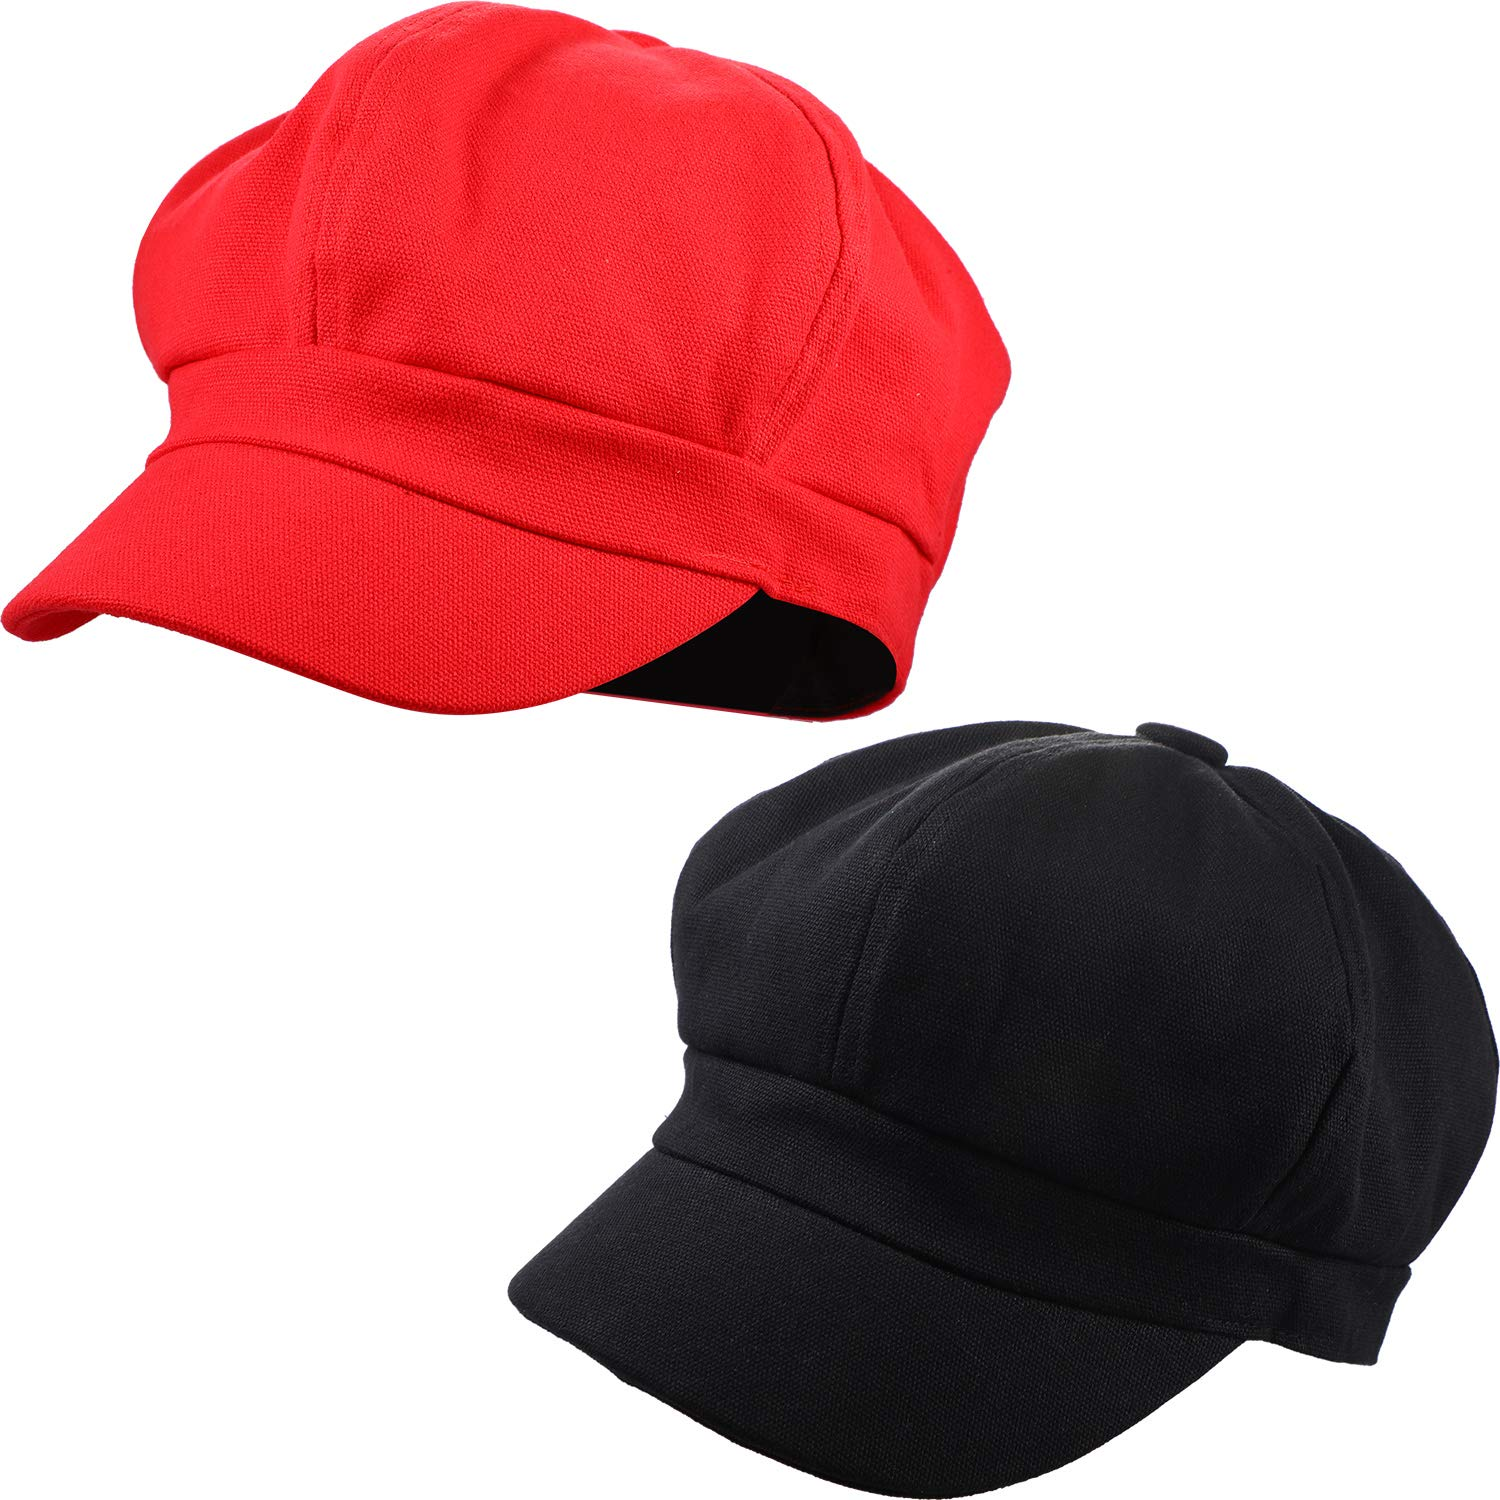 2 Pieces 8 Panel Newsboy Cap Fashion Classic Vintage Cabbie Hats/Cap for All Season, Soft Cotton with Adjustable Back (Black and Red)